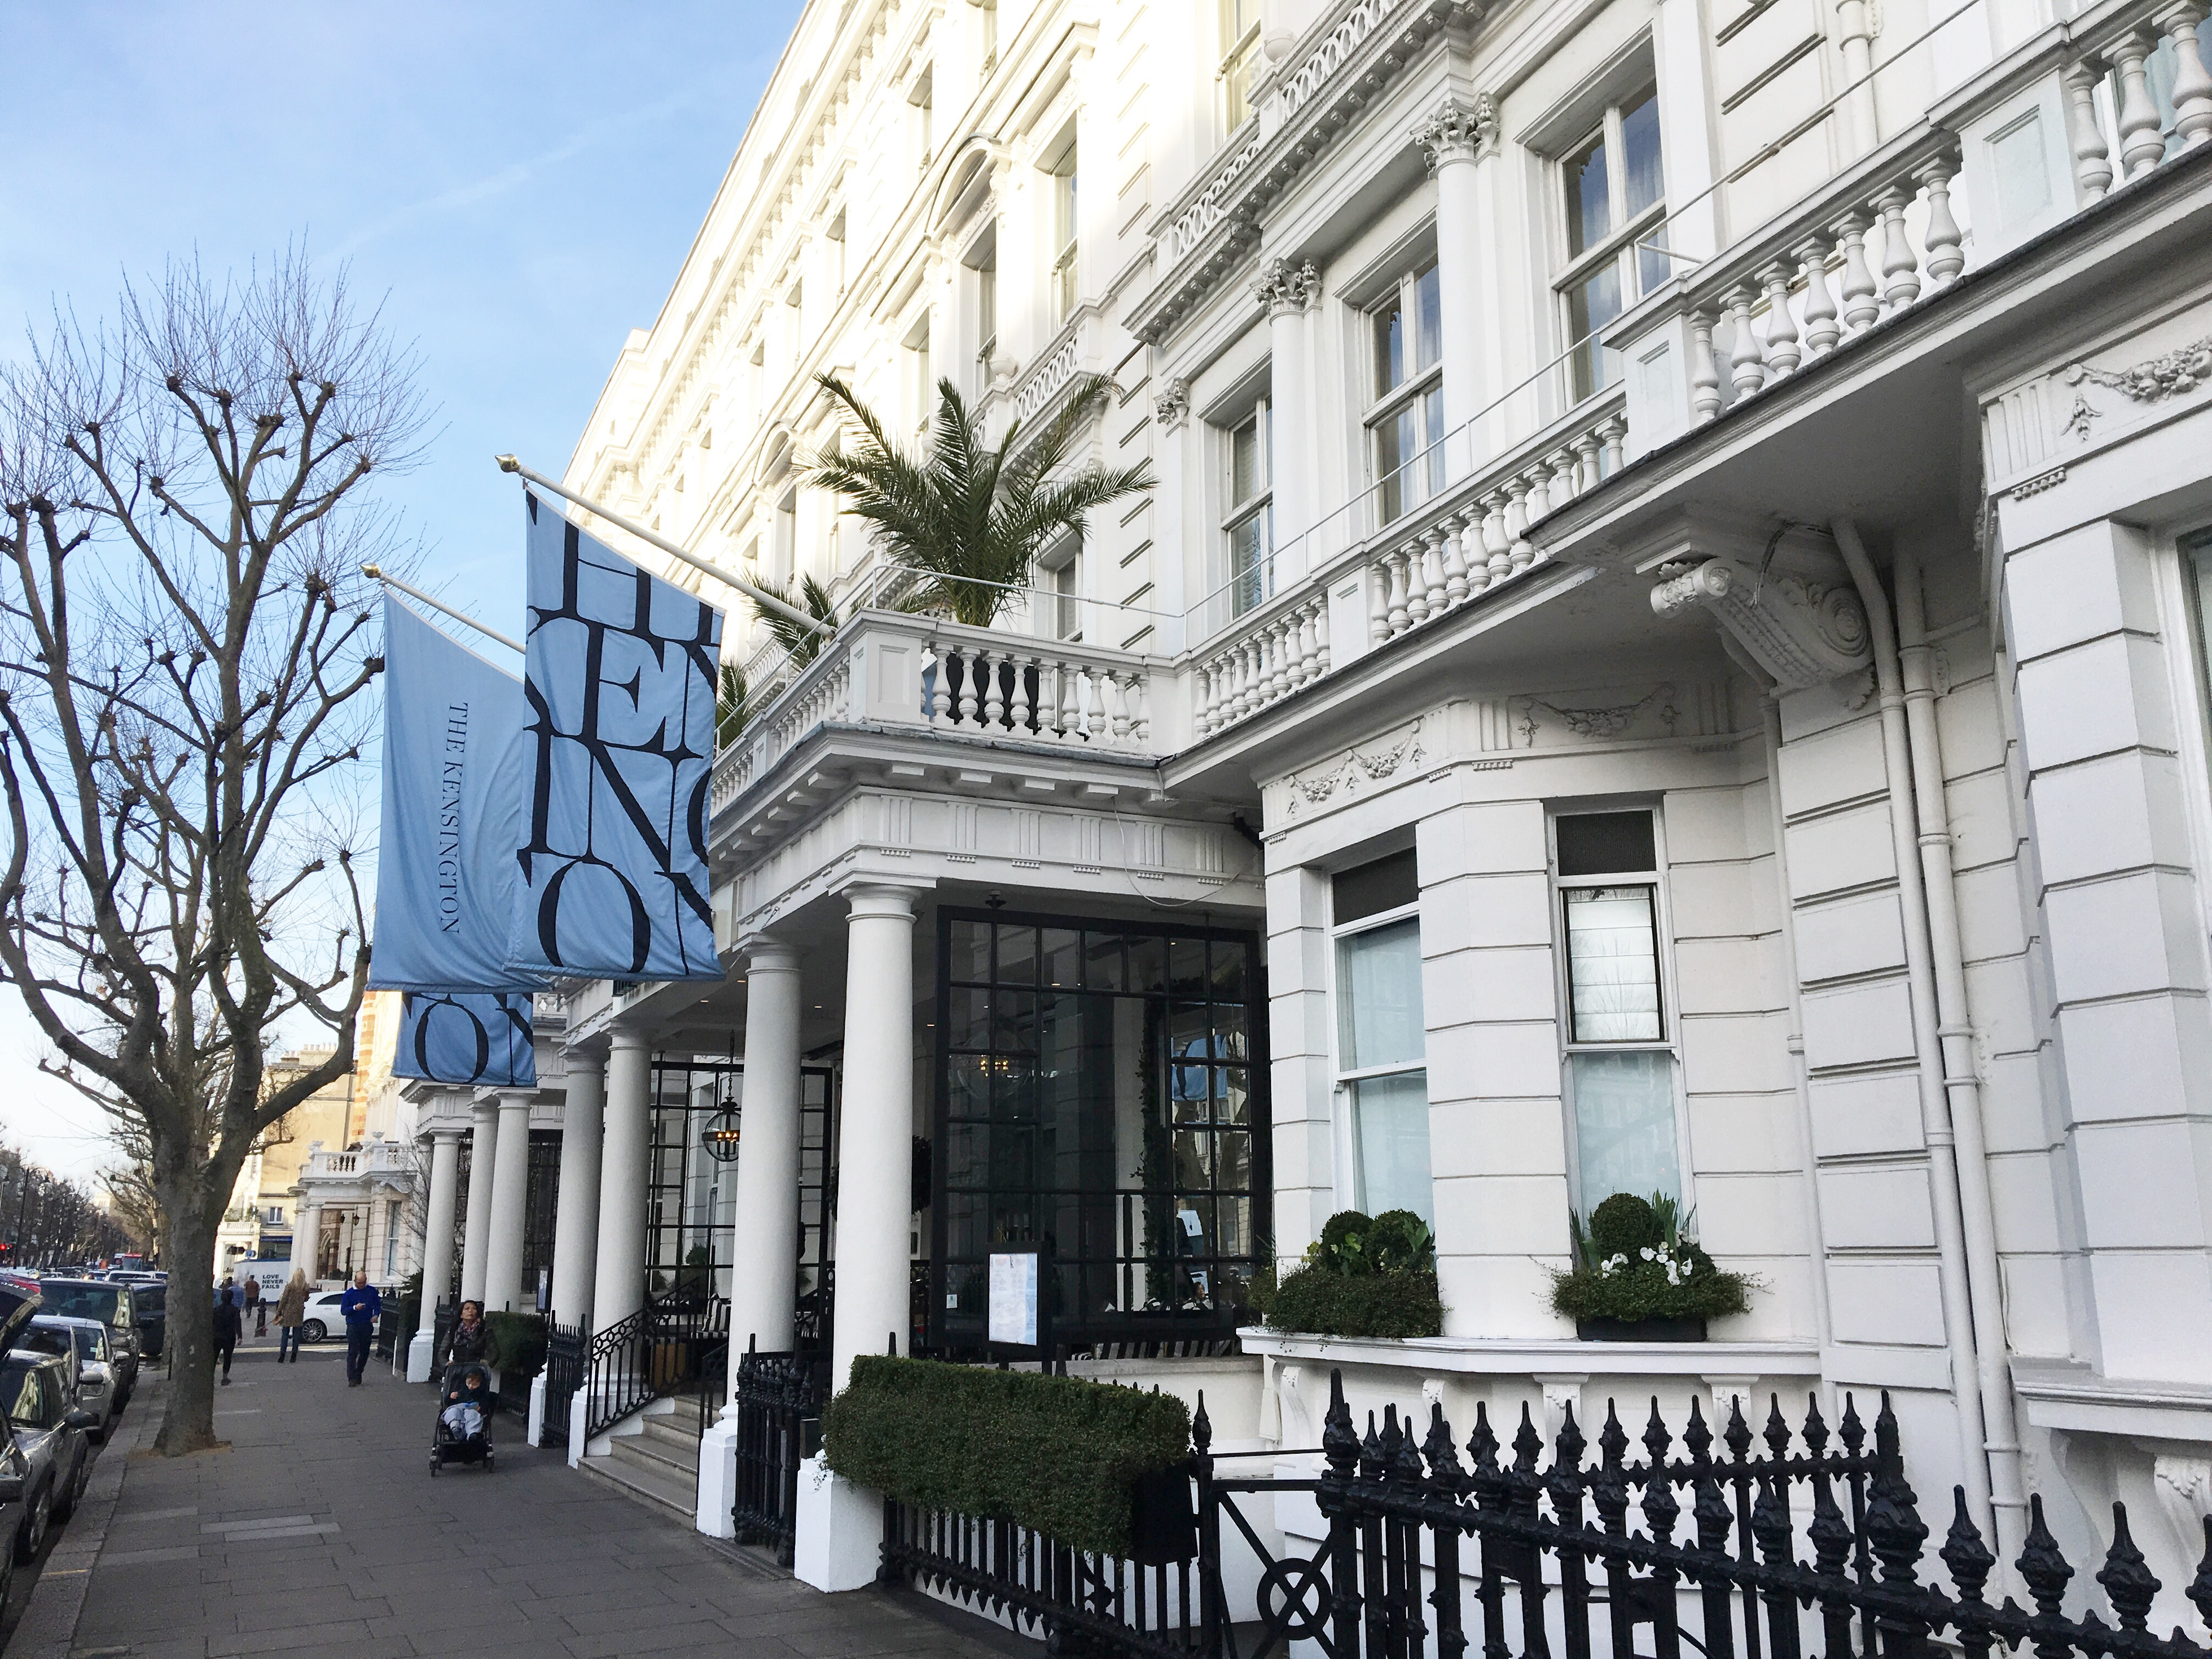 White apron london - Short Of Wearing A Blue Dress With A White Apron The Beautifully Stunning Kensington Hotel Welcomed Me To Be Their Guest At Its One Of A Kind Beauty And